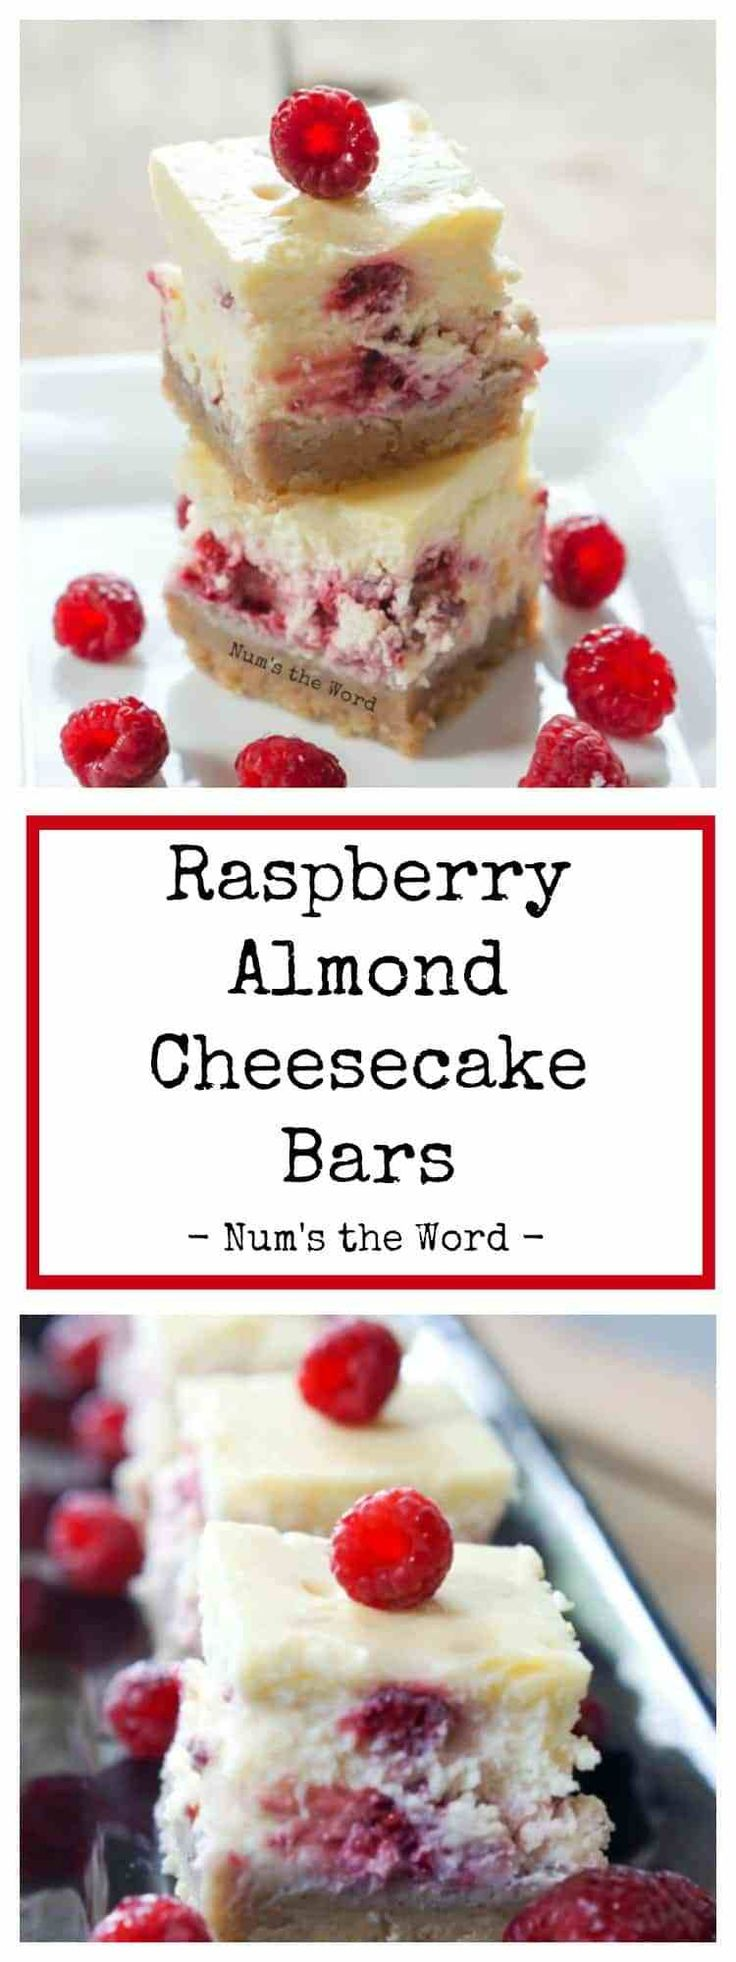 These Raspberry Almond Cheesecake Bars are the perfect party appetizer for Christmas, Baby Showers, Bridal Showers or a wedding. A favorite treat of ours!